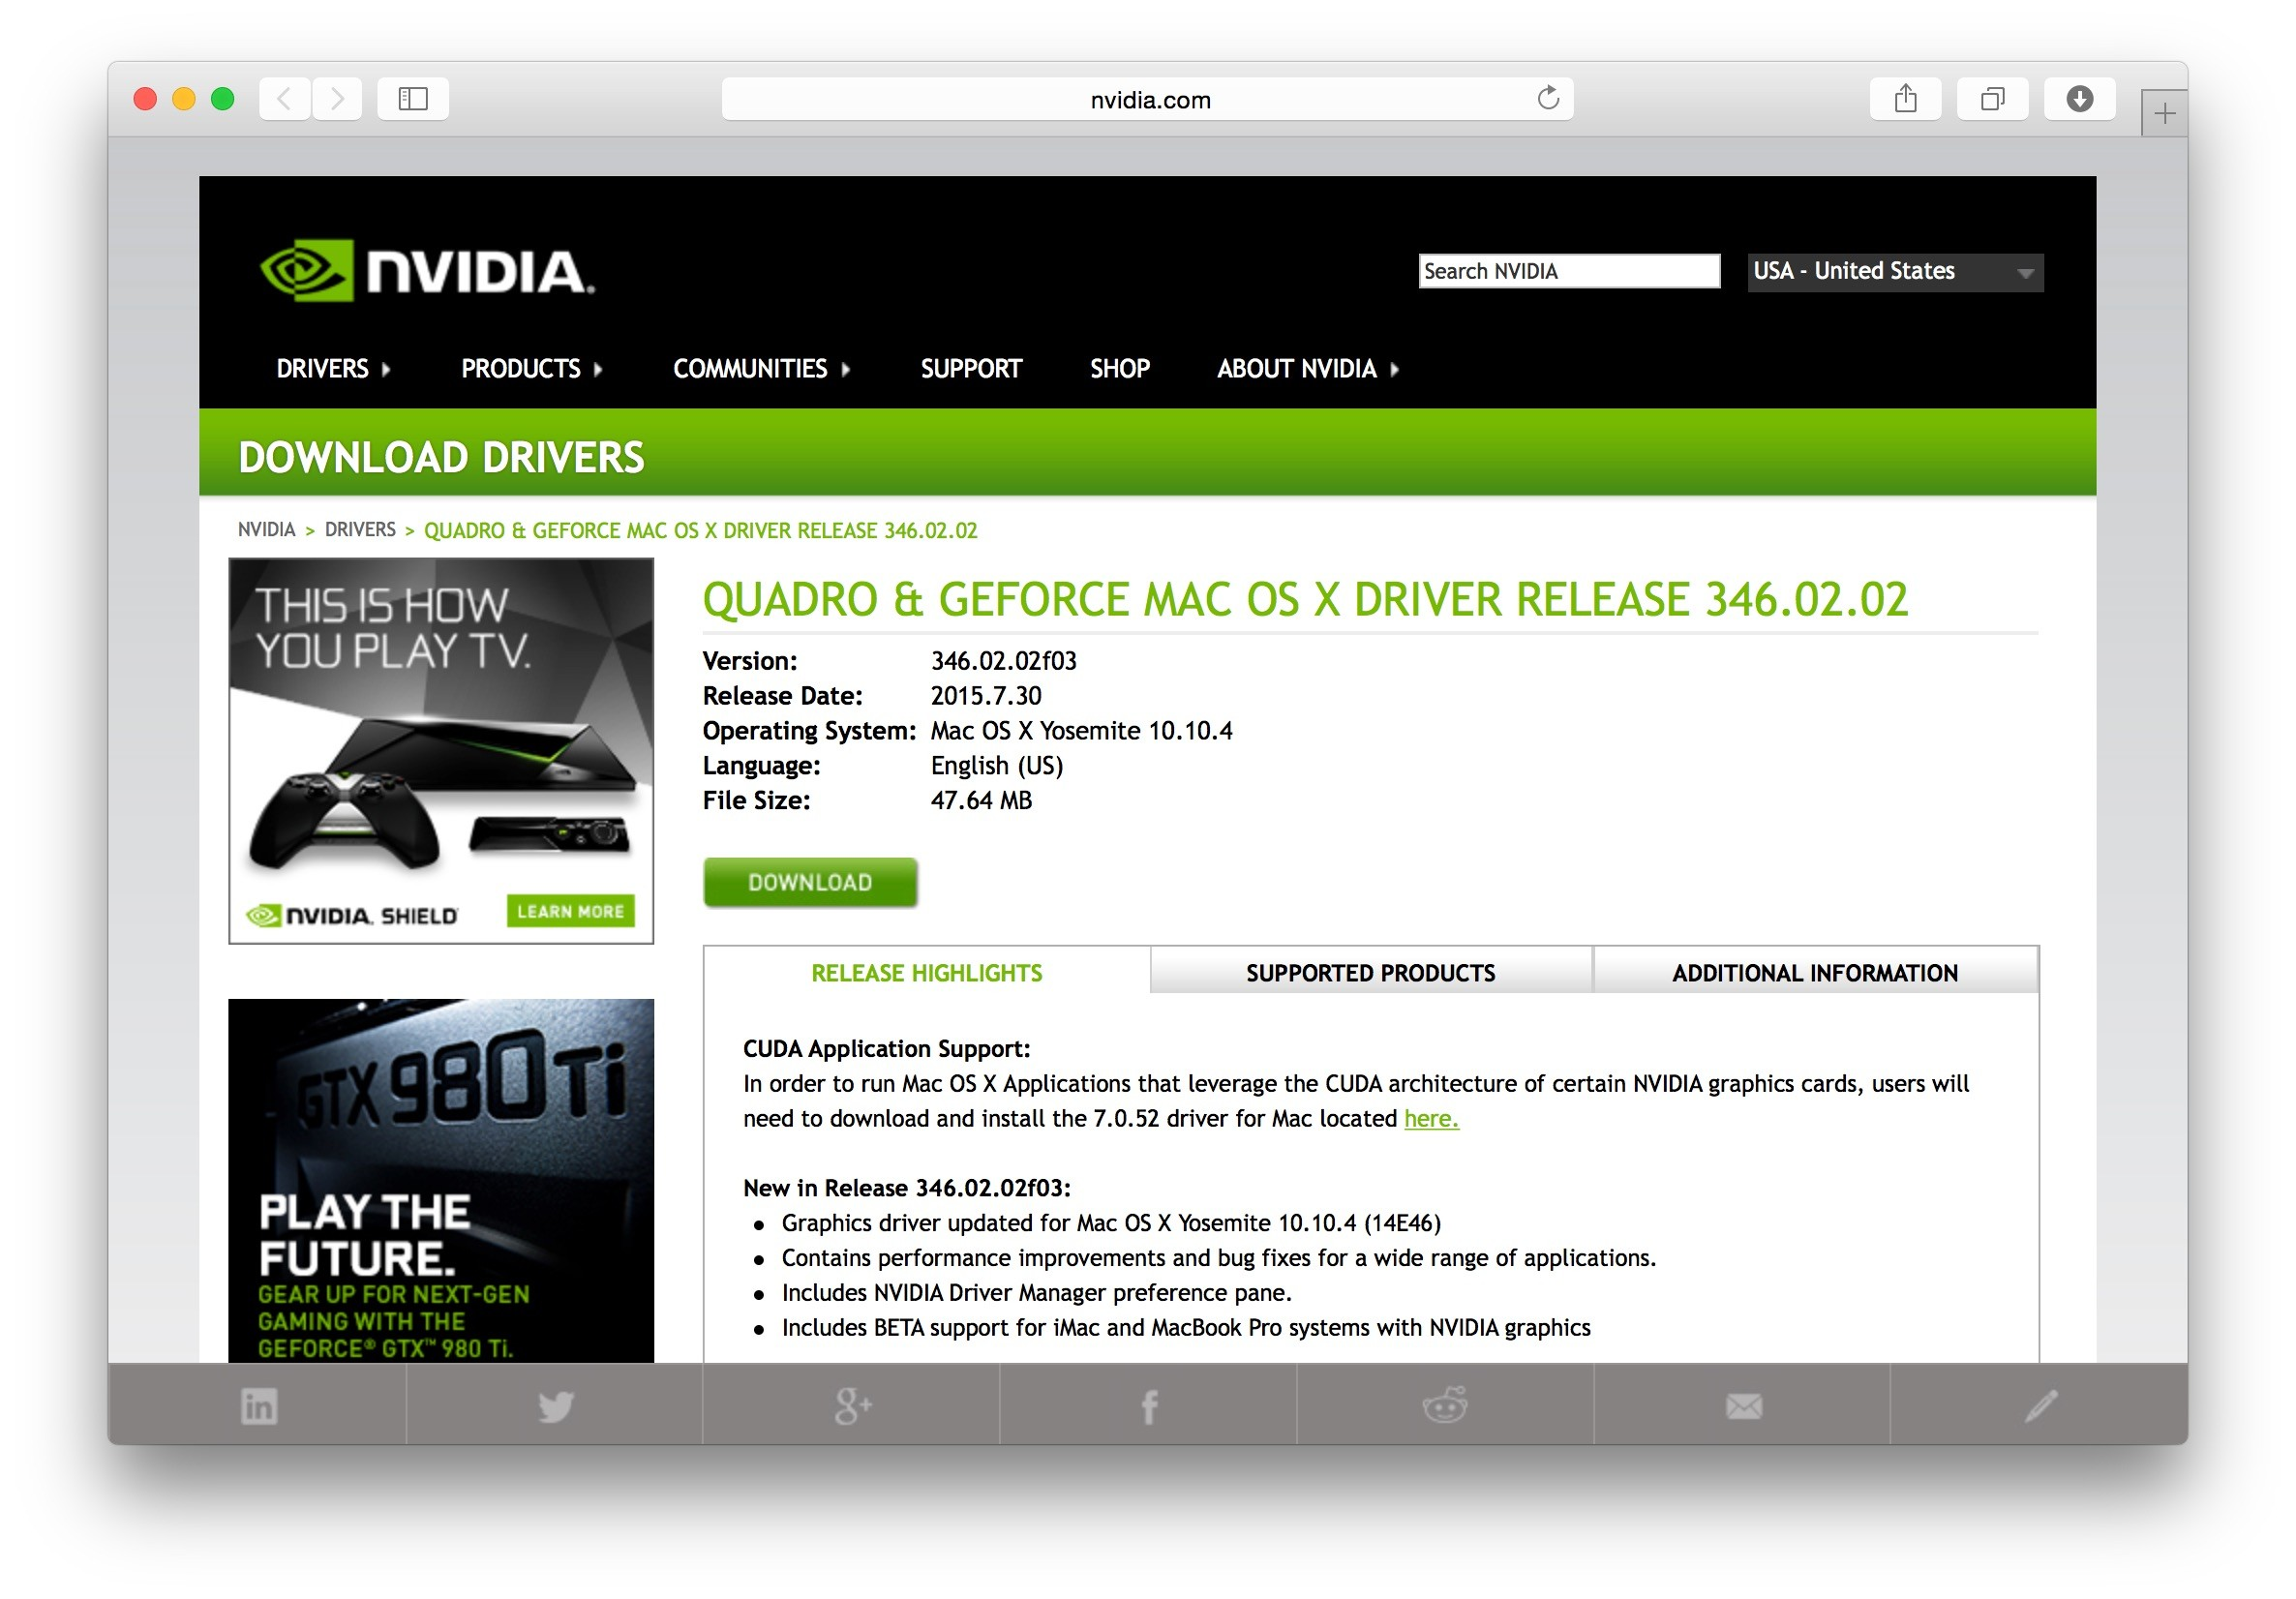 NVIDIA-Quadoro-GeForce-Mac-OS-X-Driver-Hero